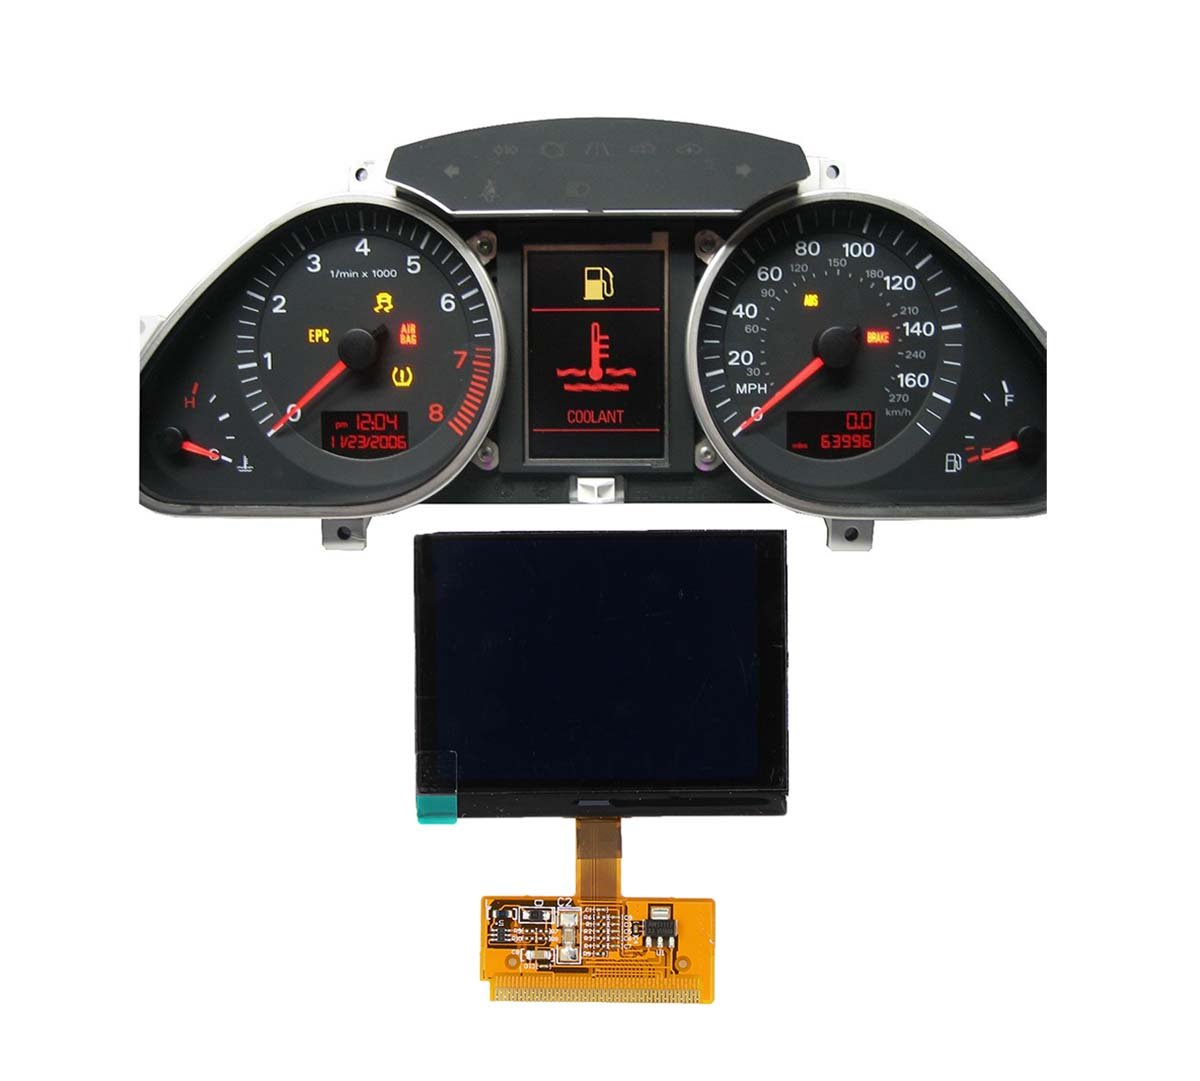 New by XtremeAmazing Instrument Cluster LCD Display For Audi A3 A4 A6 S4 B5 VW Volkswagen Sharan